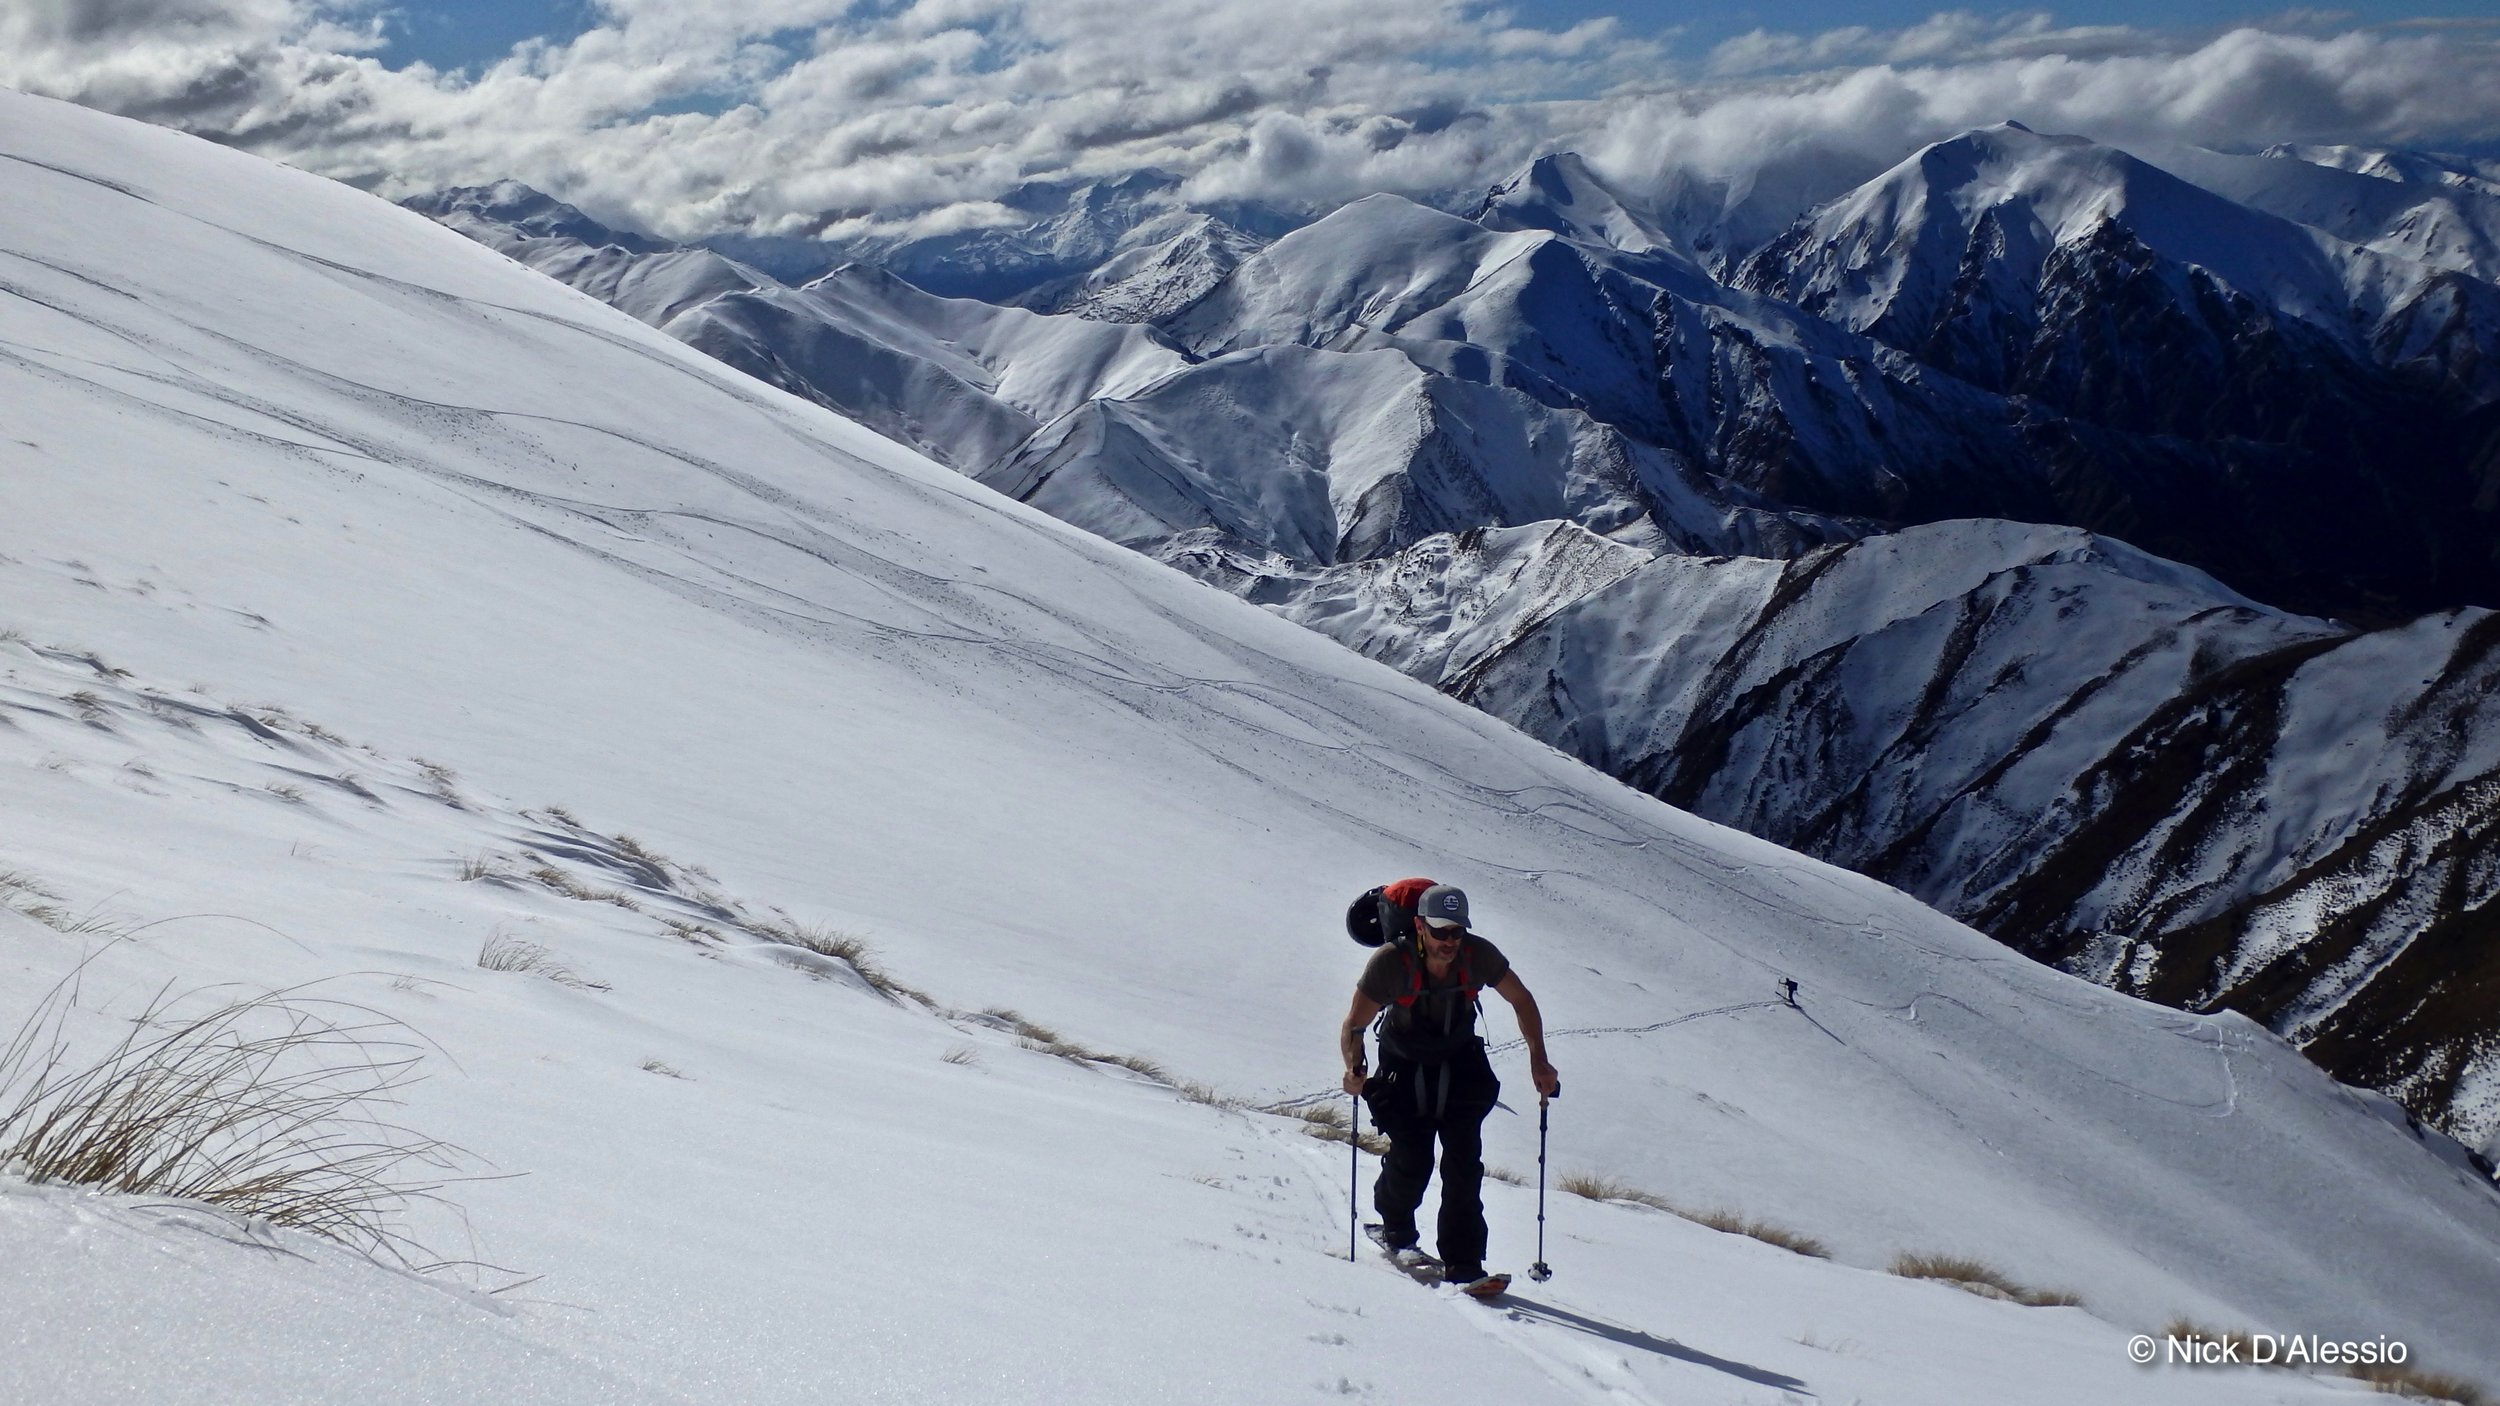 backcountry skiing with ski guide Nick D'Alessio, Remarkable Adventures